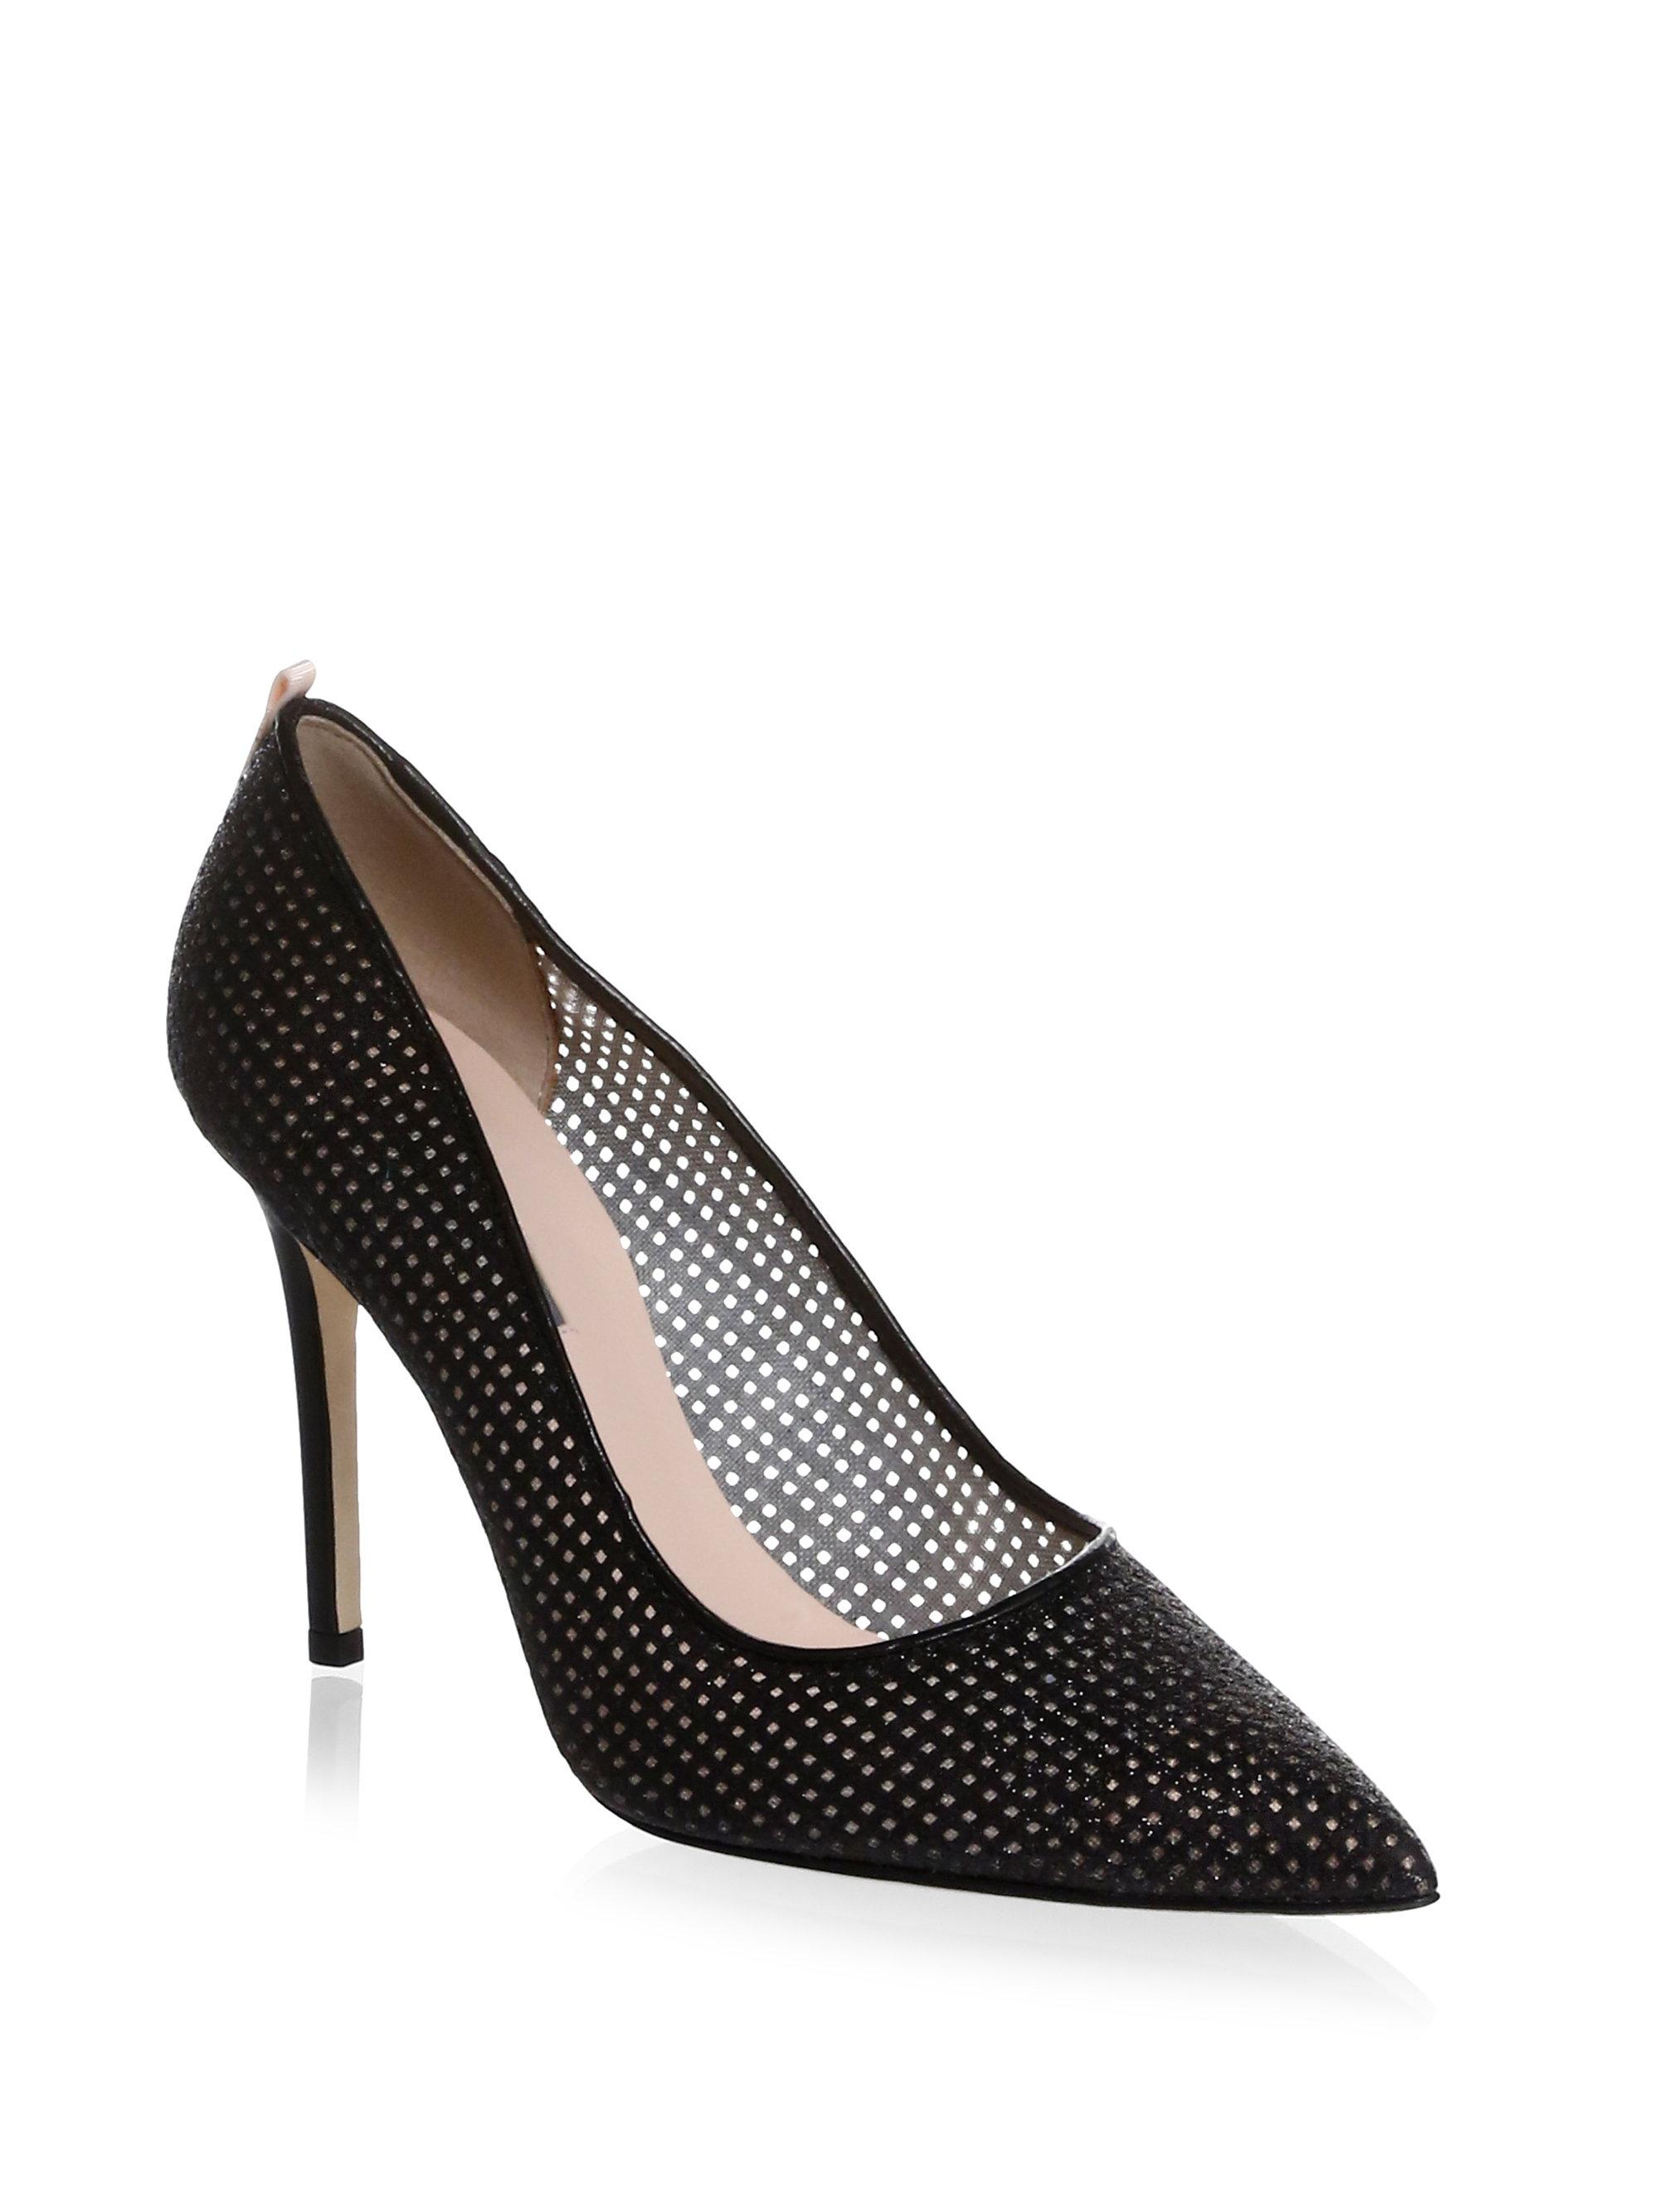 Sjp Fawn Perforated Leather Stiletto Pumps